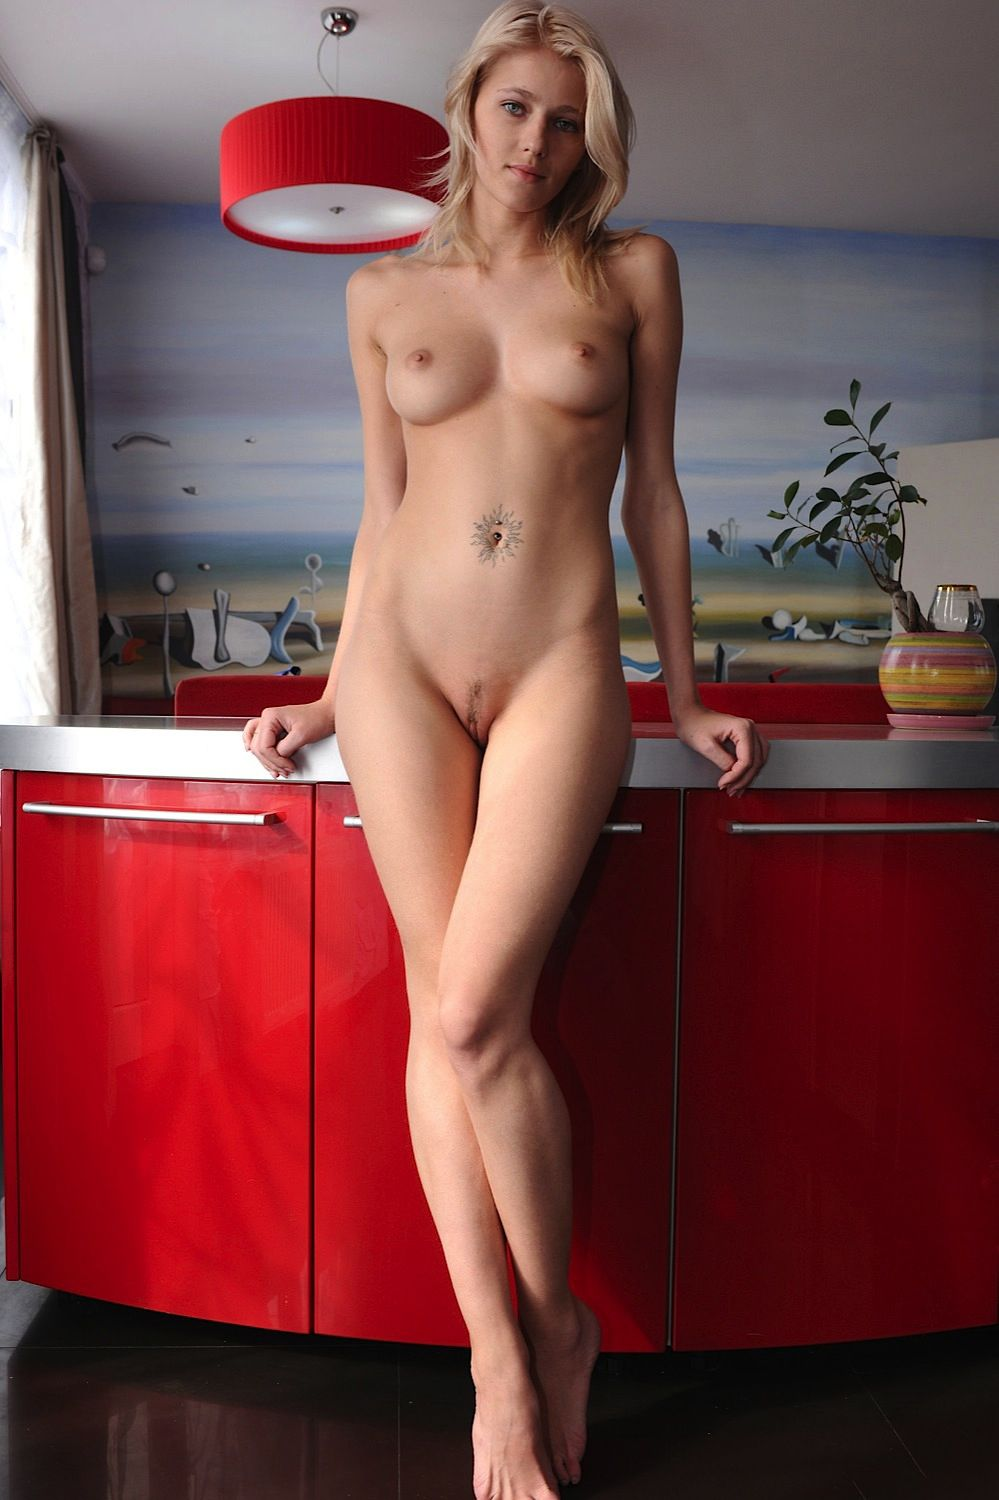 Beautiful naked 20-40 naked women